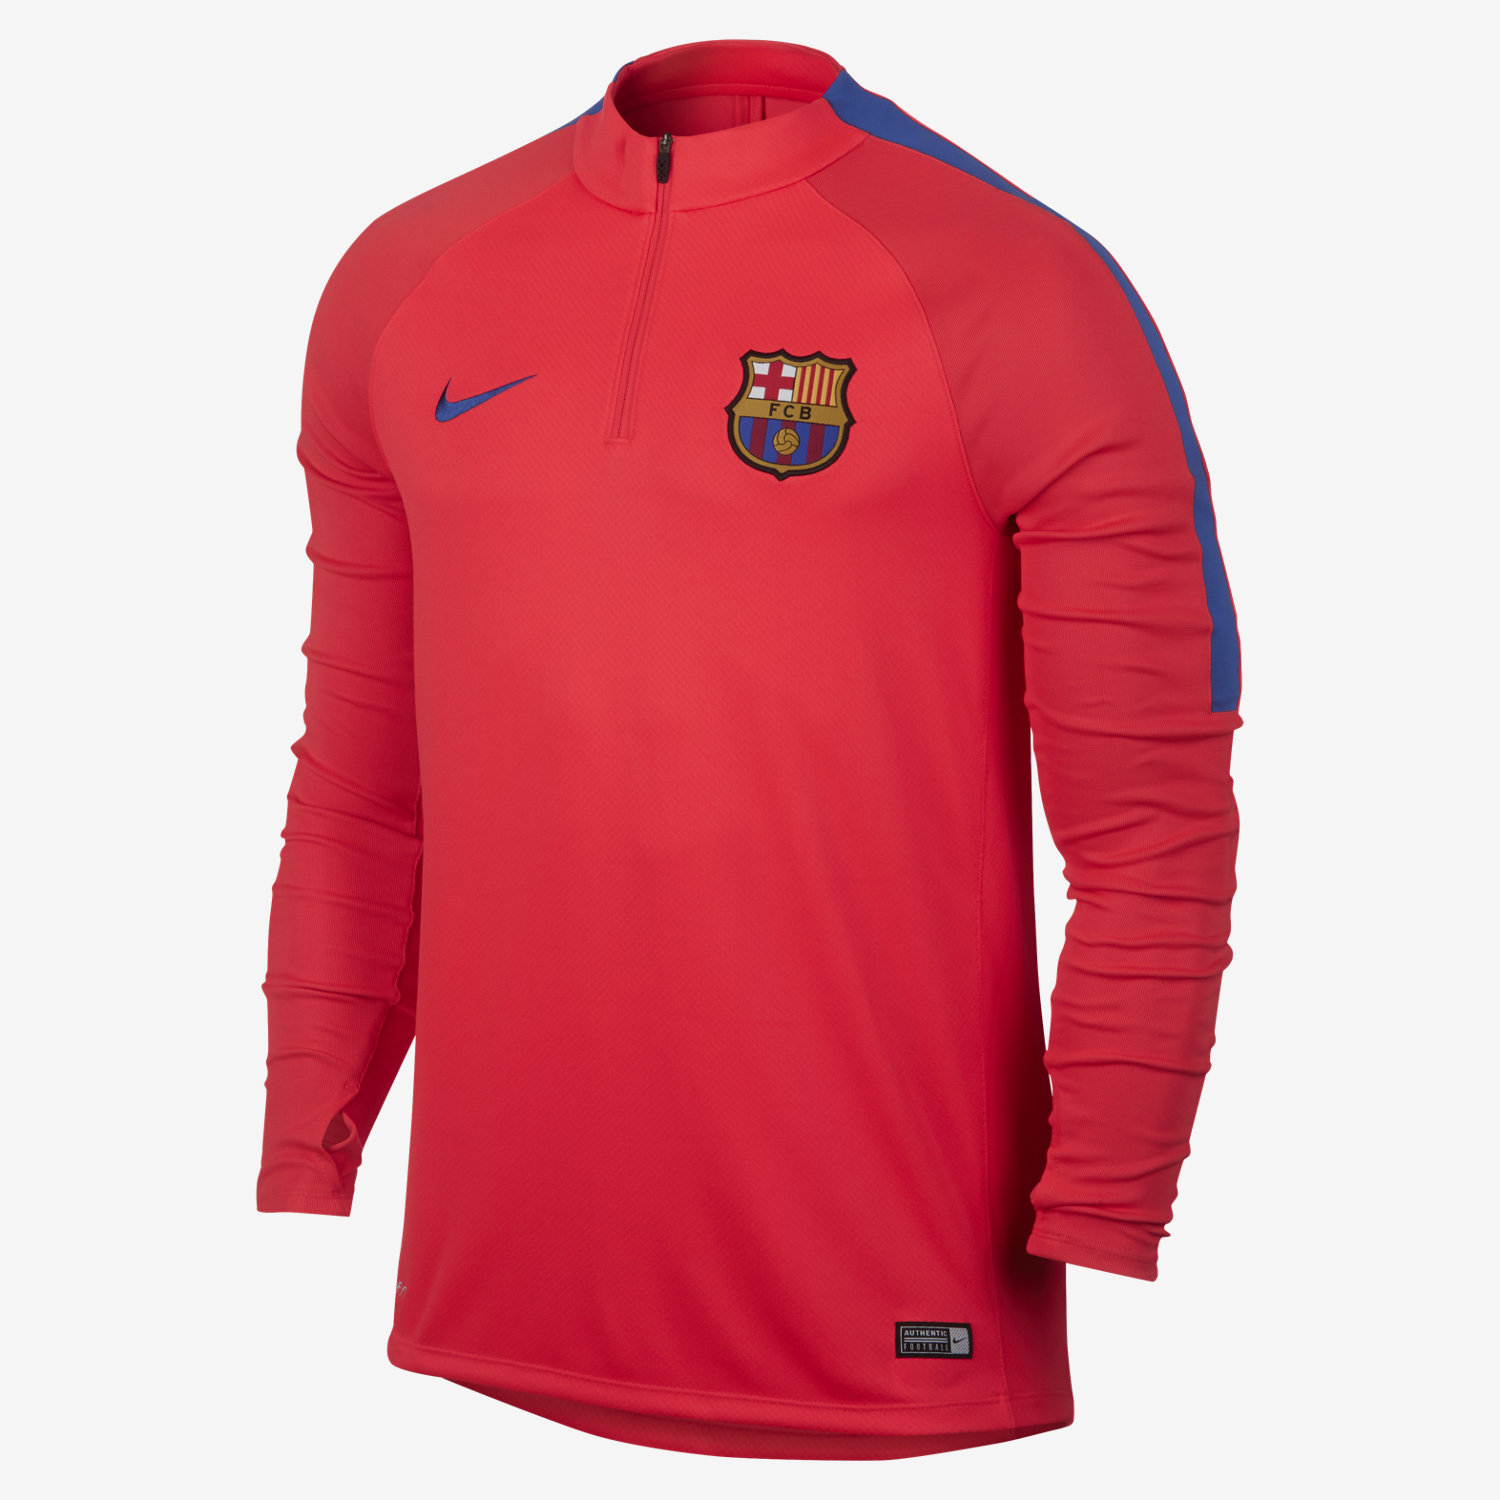 151dec34a Authentic FC Barcelona crest and colors show your club pride.Kimono-style  neck construction minimizes seams for enhanced comfort.Thumbholes help hold  the ...